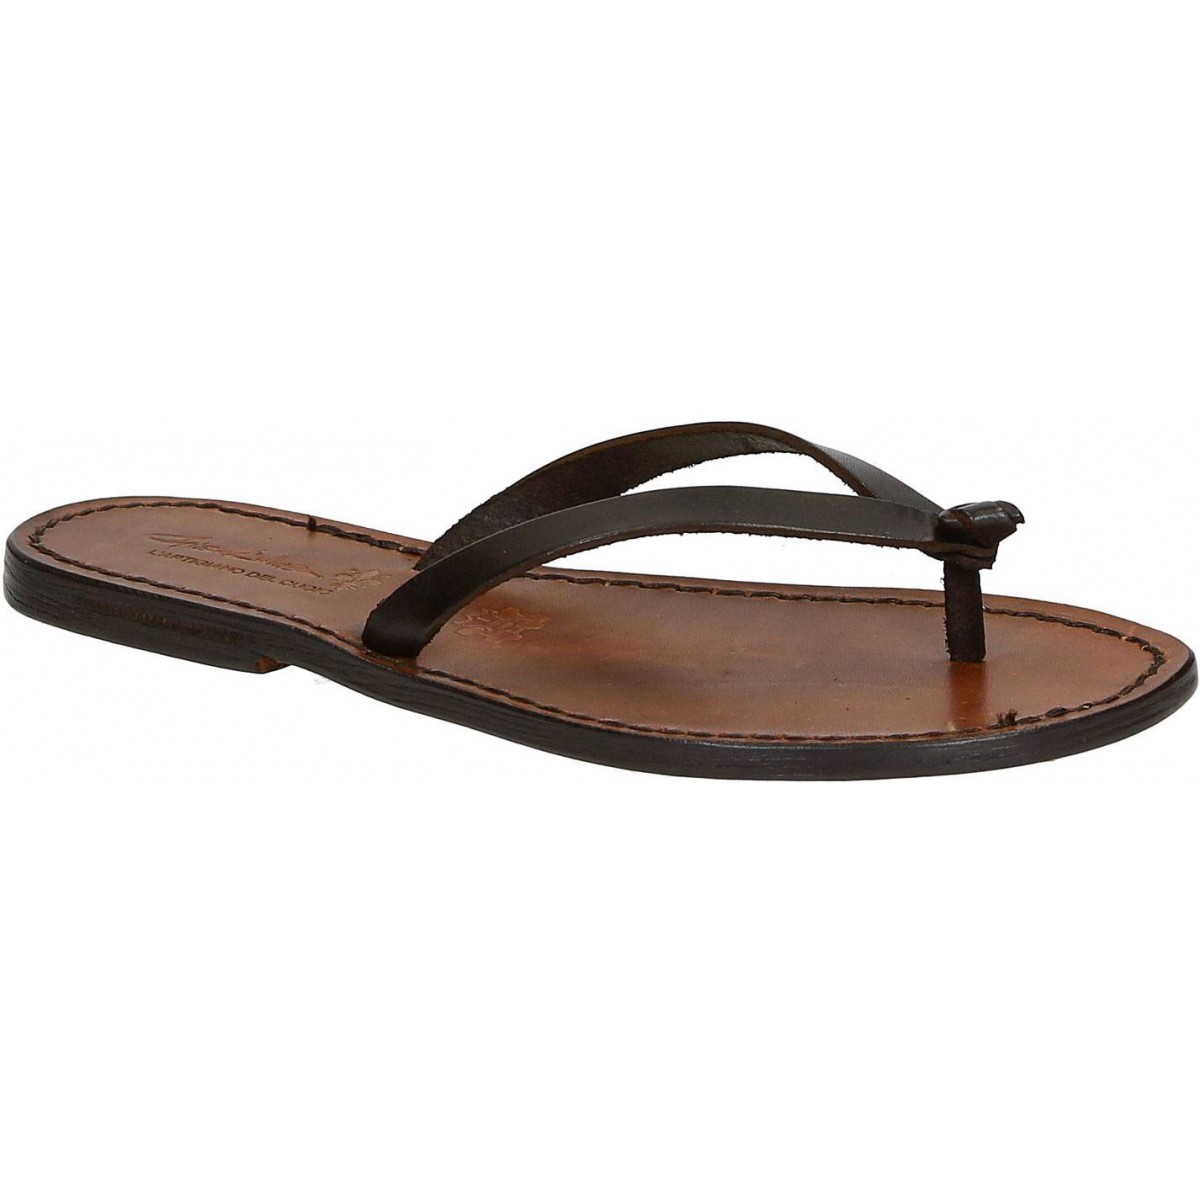 f9a6e528b14197 Handmade thong sandals for women dark brown leather. Loading zoom